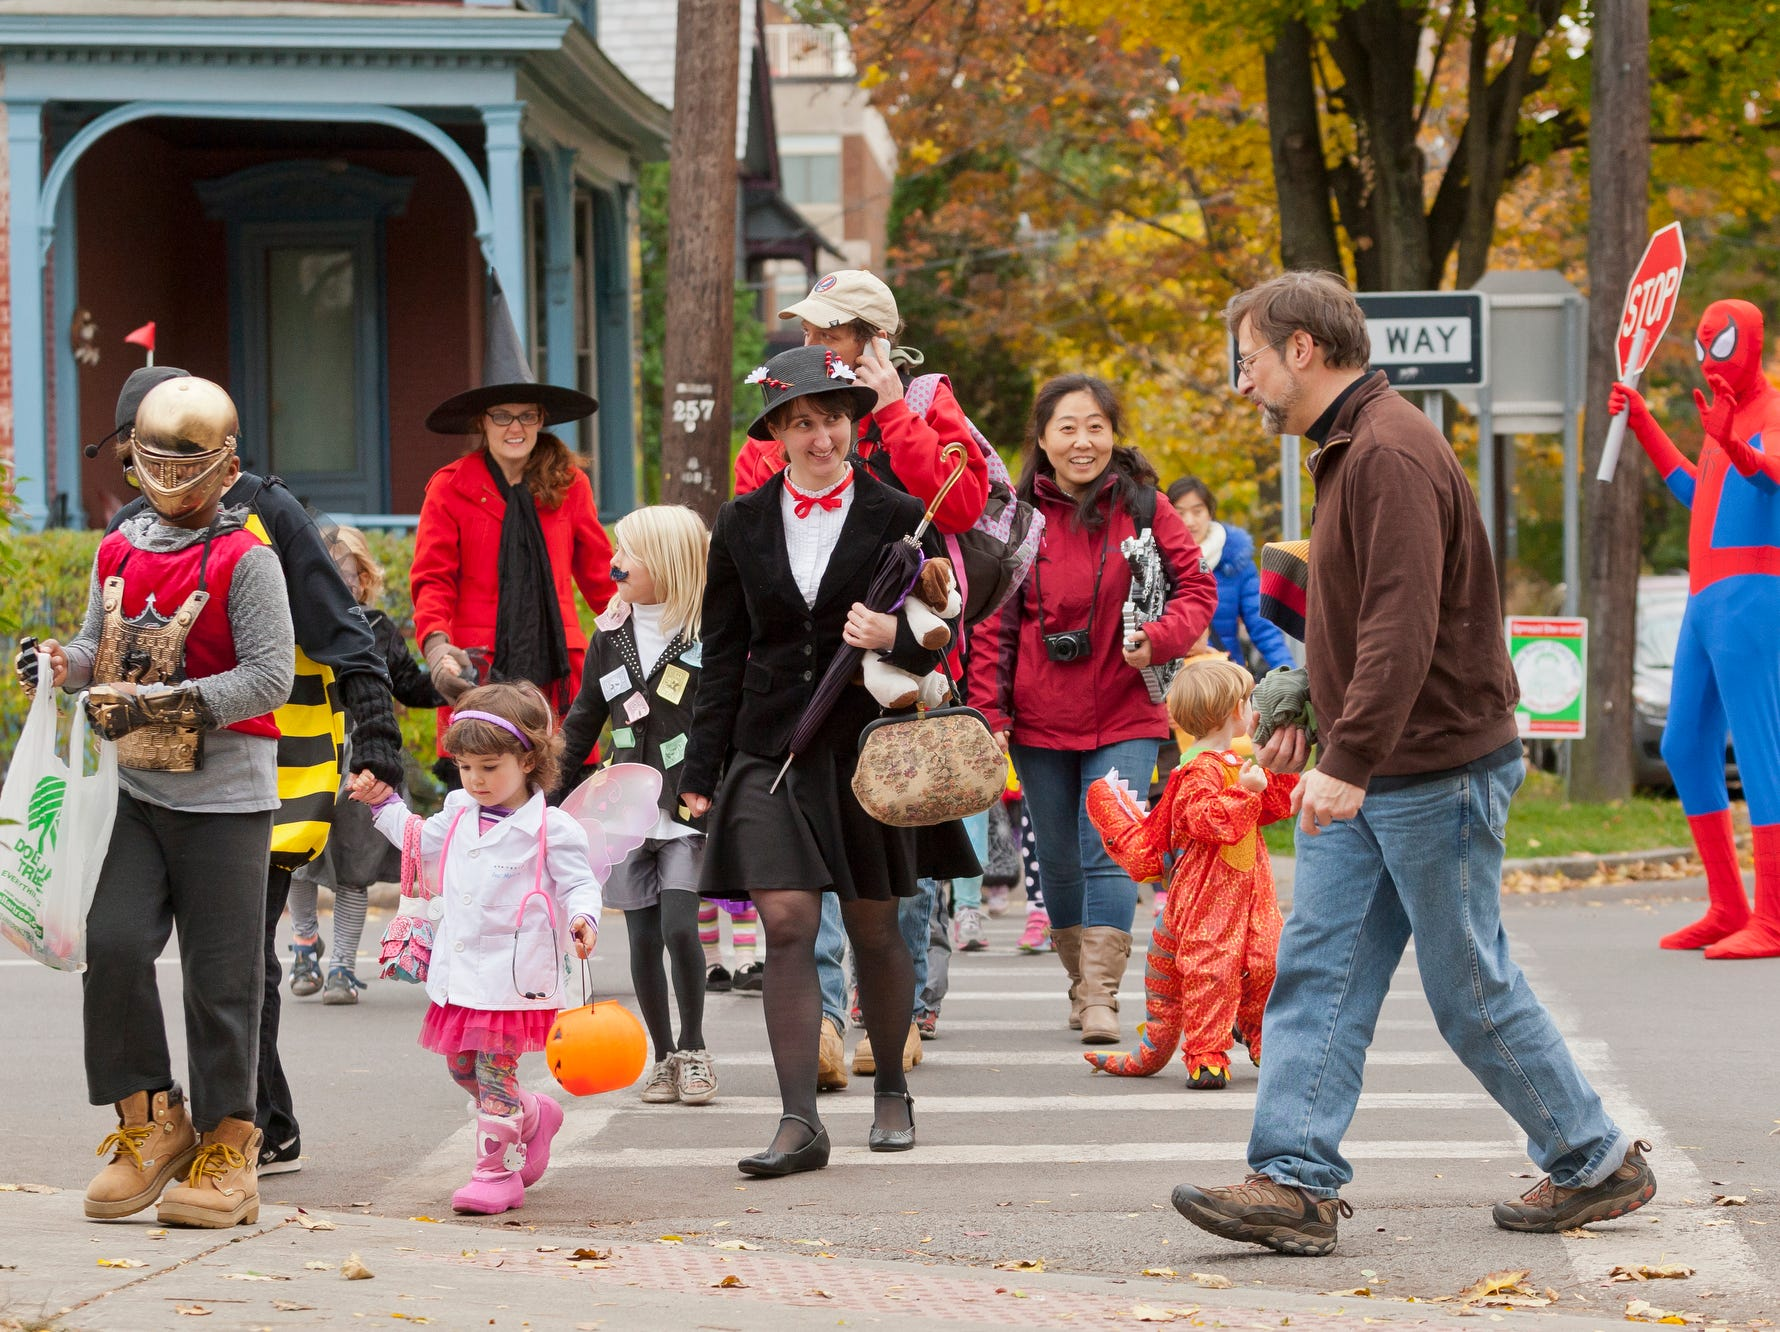 2014: More than 200 parents and children participated in the annual Downtown Halloween Parade Thursday in Ithaca. The parade travelled from the Greater Ithaca Activities Center to McGraw House and then onto The Commons for trick or treating, games and food in Center Ithaca.